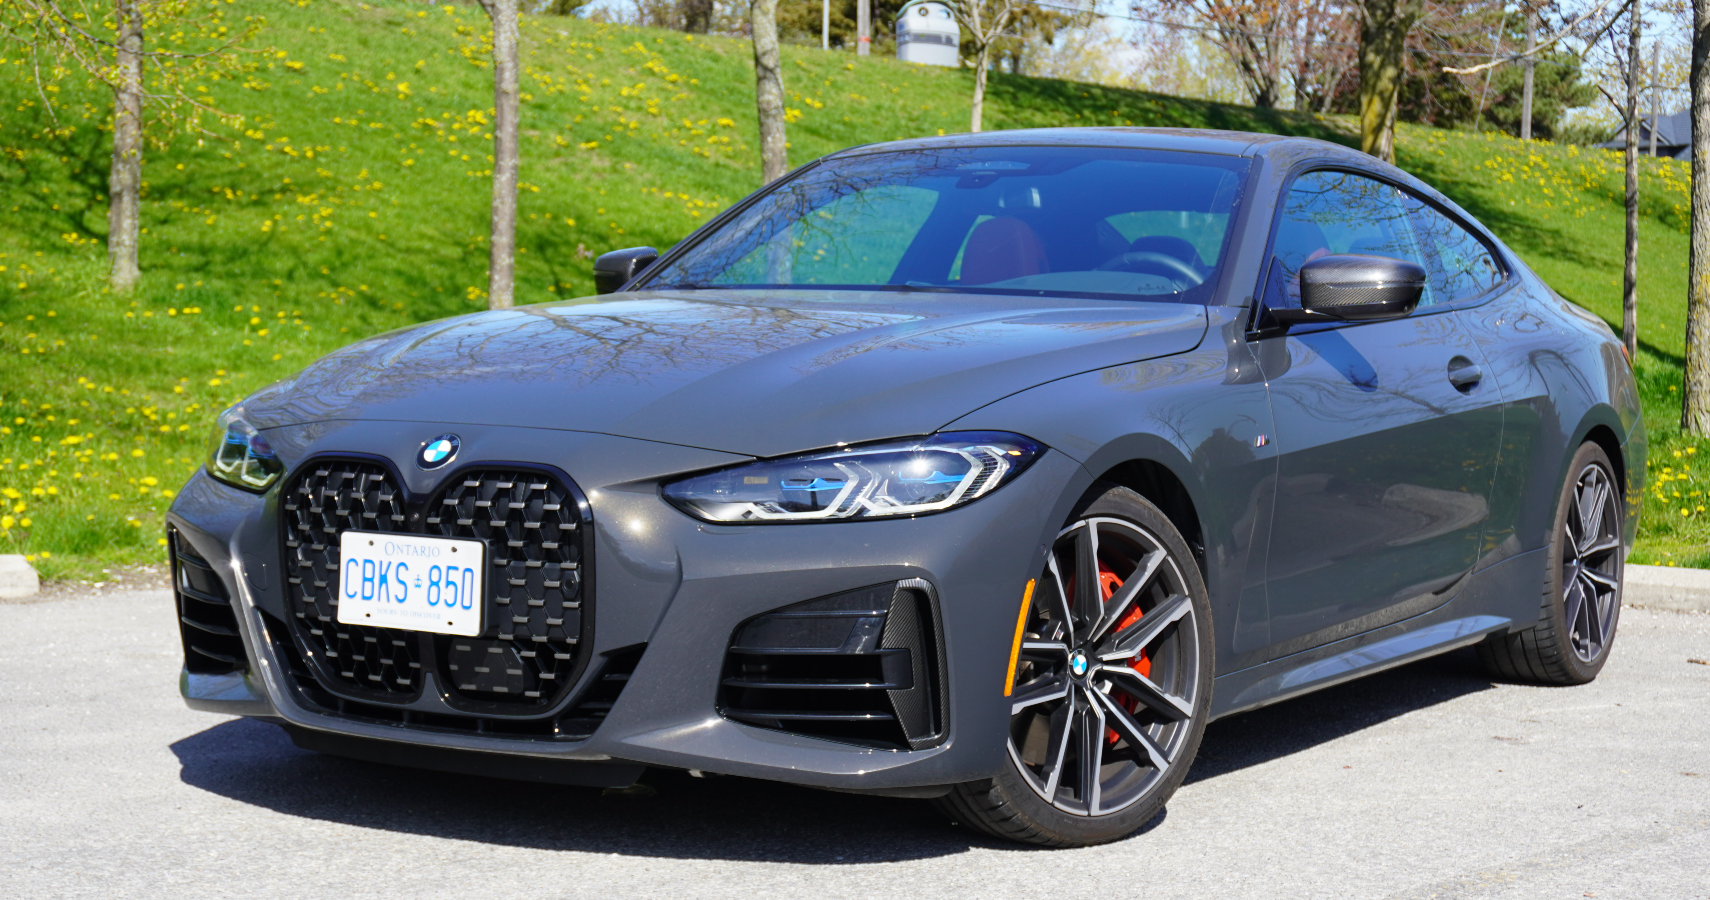 2021 BMW M440i Review: Don't Take It At Face Value | HotCars